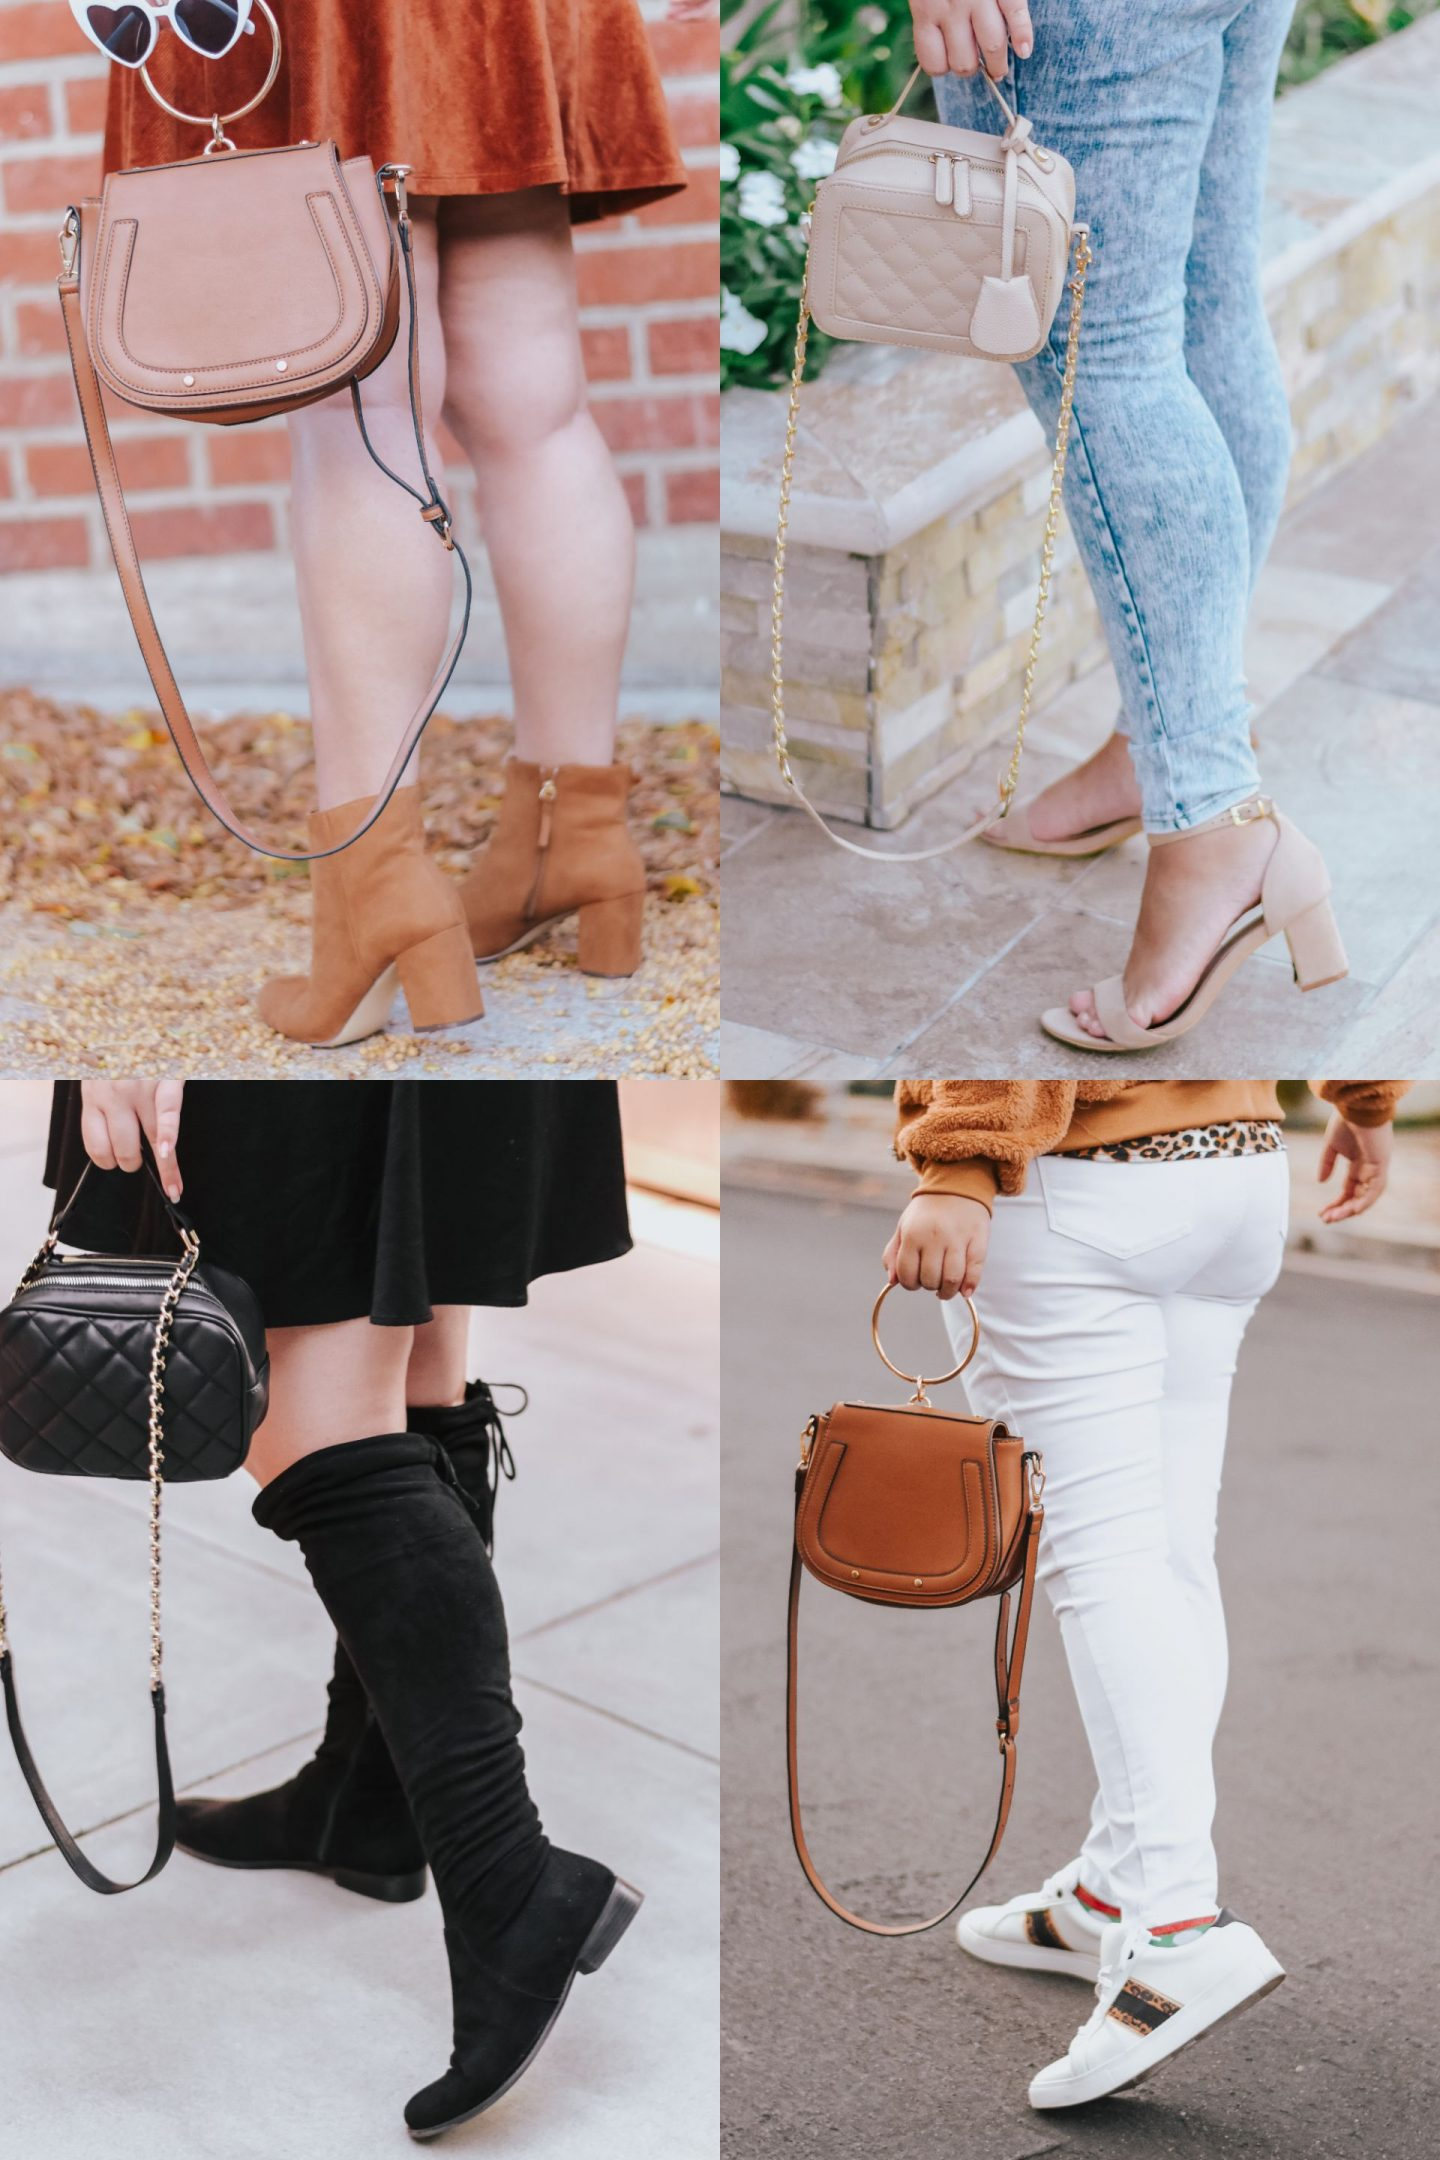 The Fall Shoe Guide of Styles I've Loved This Season